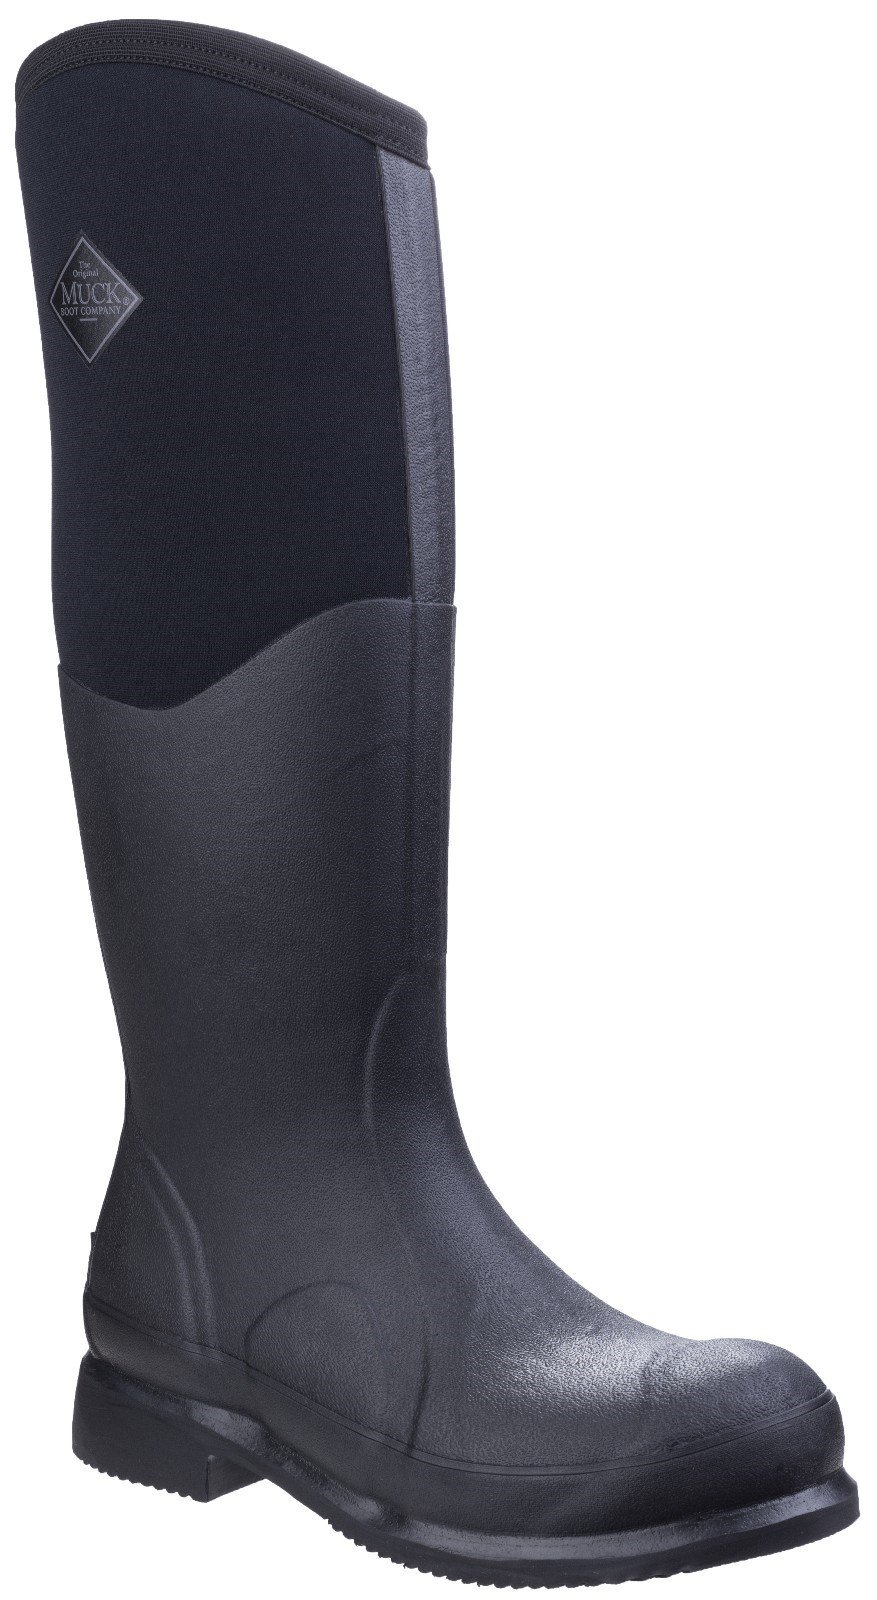 Muck Boots Unisex Colt Ryder All-Conditions Riding Boot Black 25886 - Black/Black 4